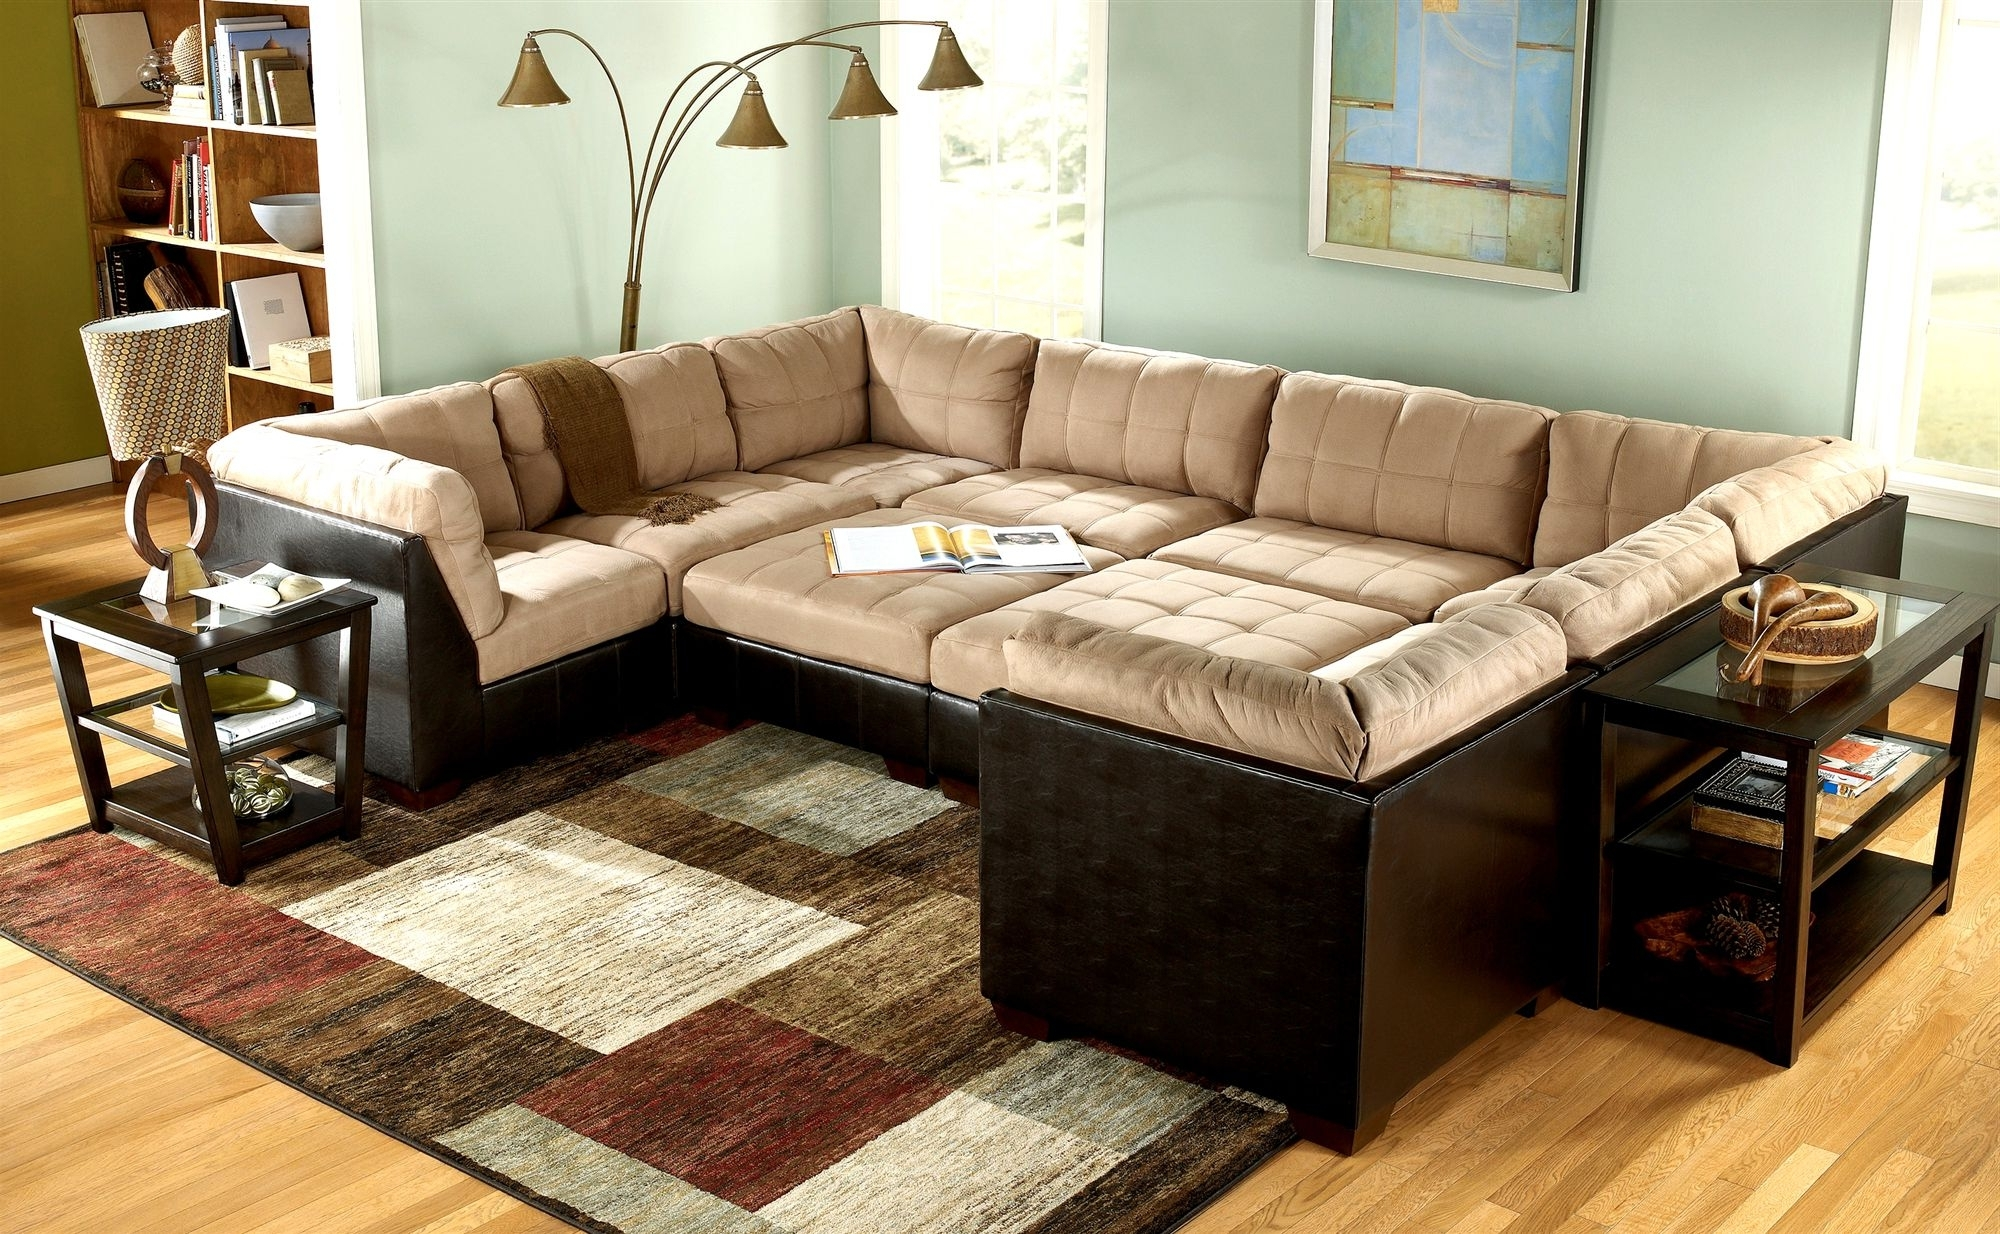 Simple Cheap Sectional Sofas With Ottoman 41 For Your Jennifer With Regard To Preferred Cheap Sectionals With Ottoman (View 16 of 20)